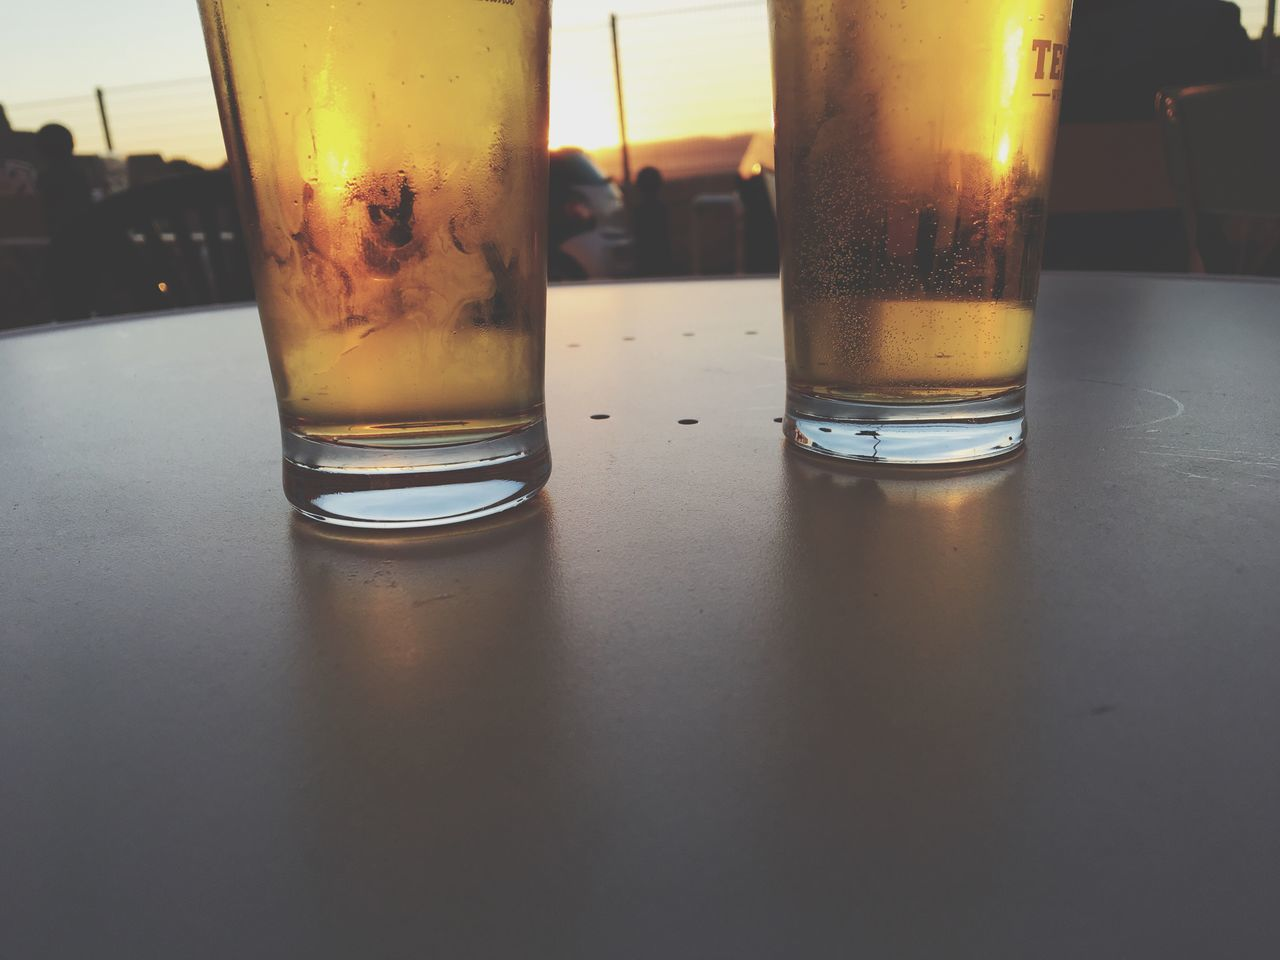 Cold Beer Drink Alcohol Refreshment Food And Drink Drinking Glass Table Close-up No People Indoors  Freshness Day